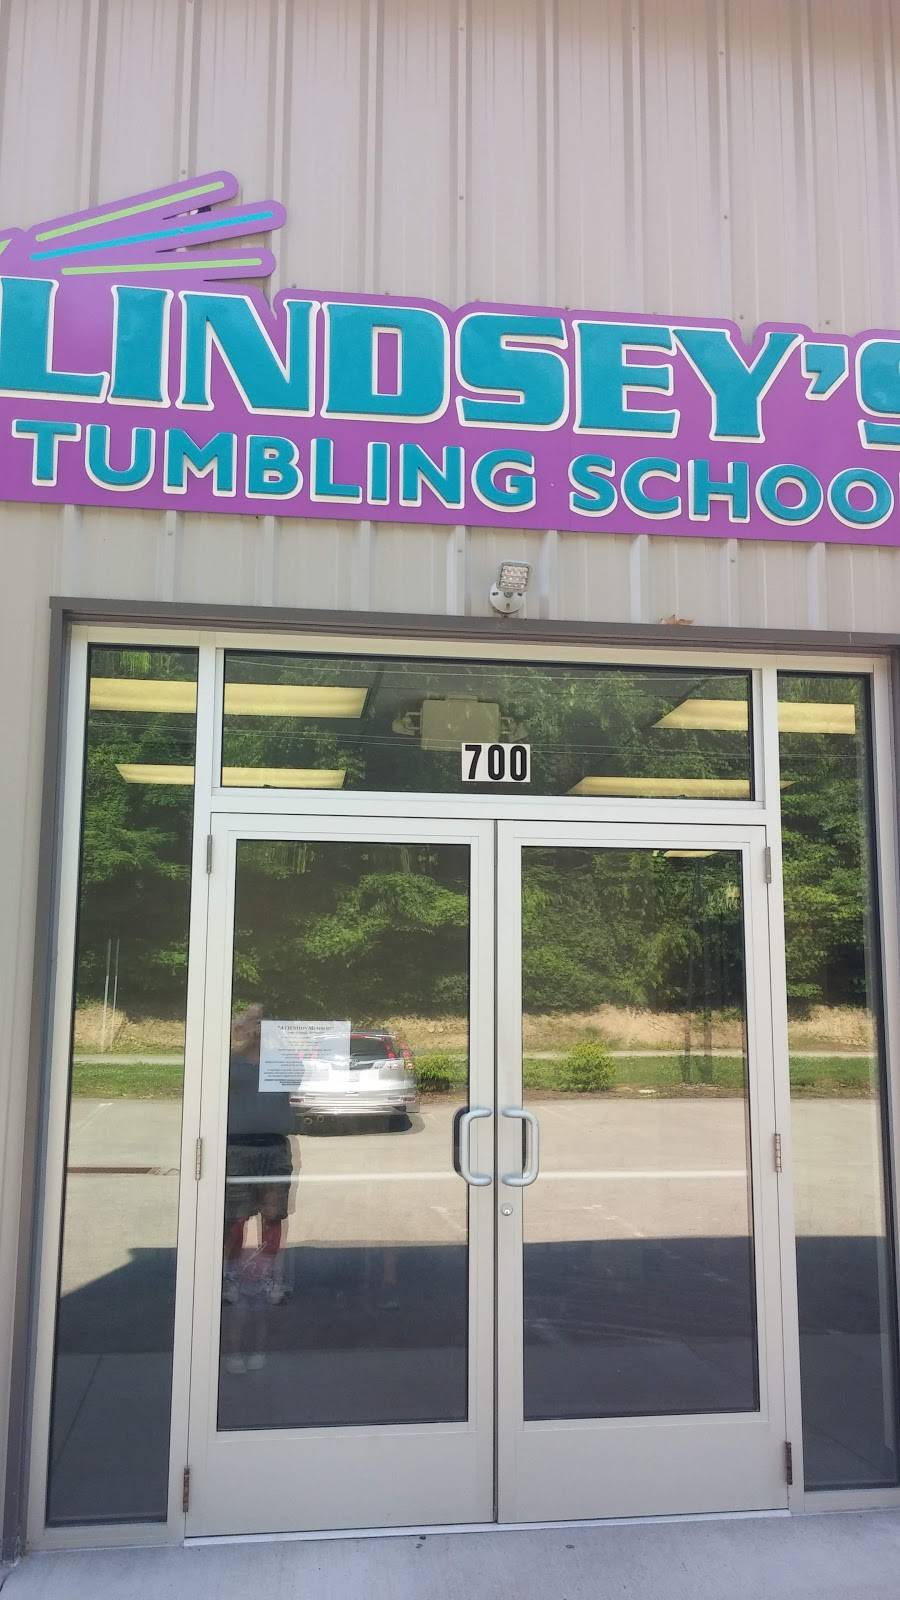 Lindseys Tumbling School - gym  | Photo 5 of 9 | Address: 700 Cochran Mill Rd, Clairton, PA 15025, USA | Phone: (412) 386-8065